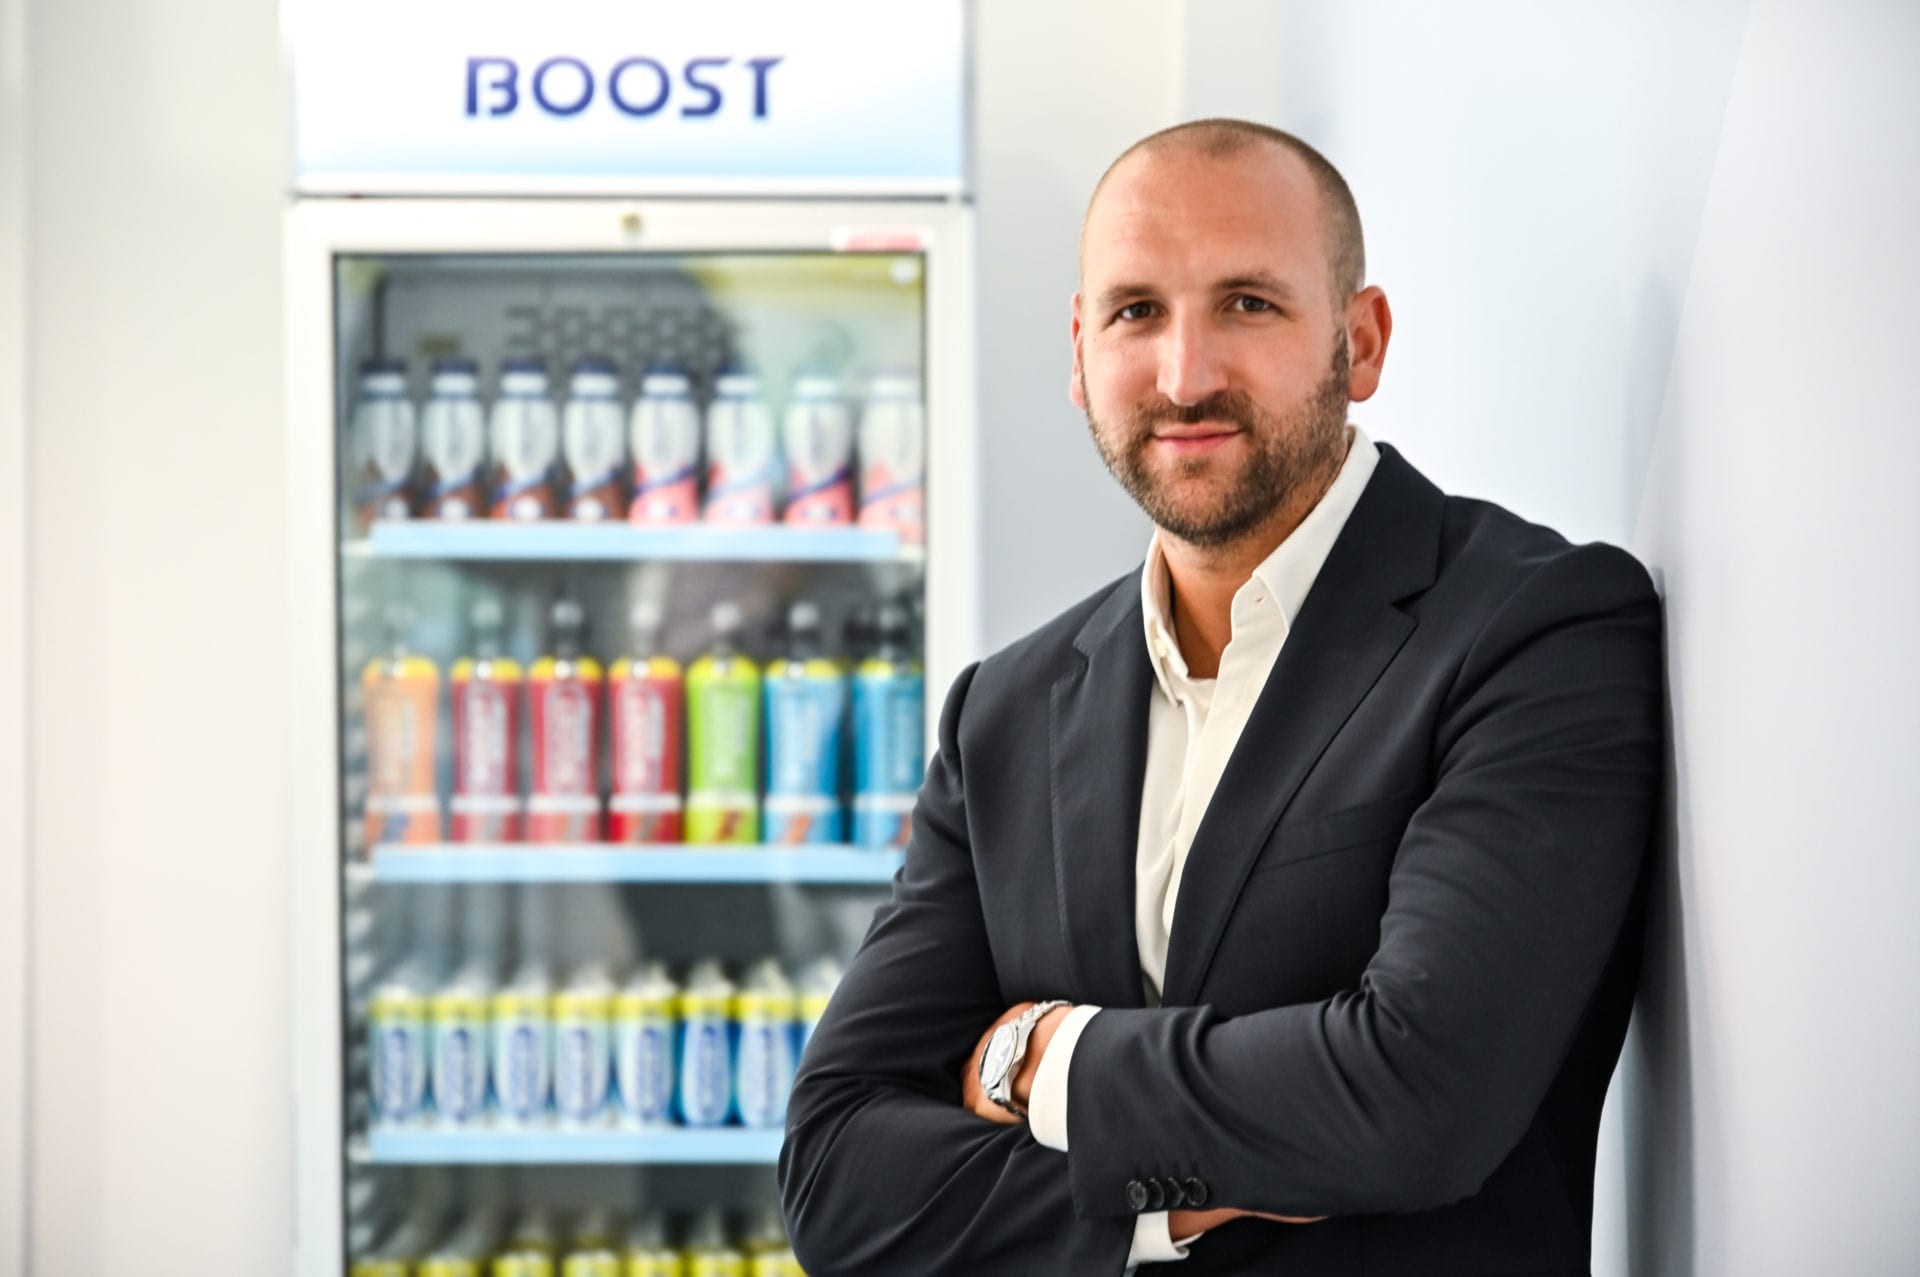 Boost Drinks appoints Adrian Hipkiss as Marketing Director